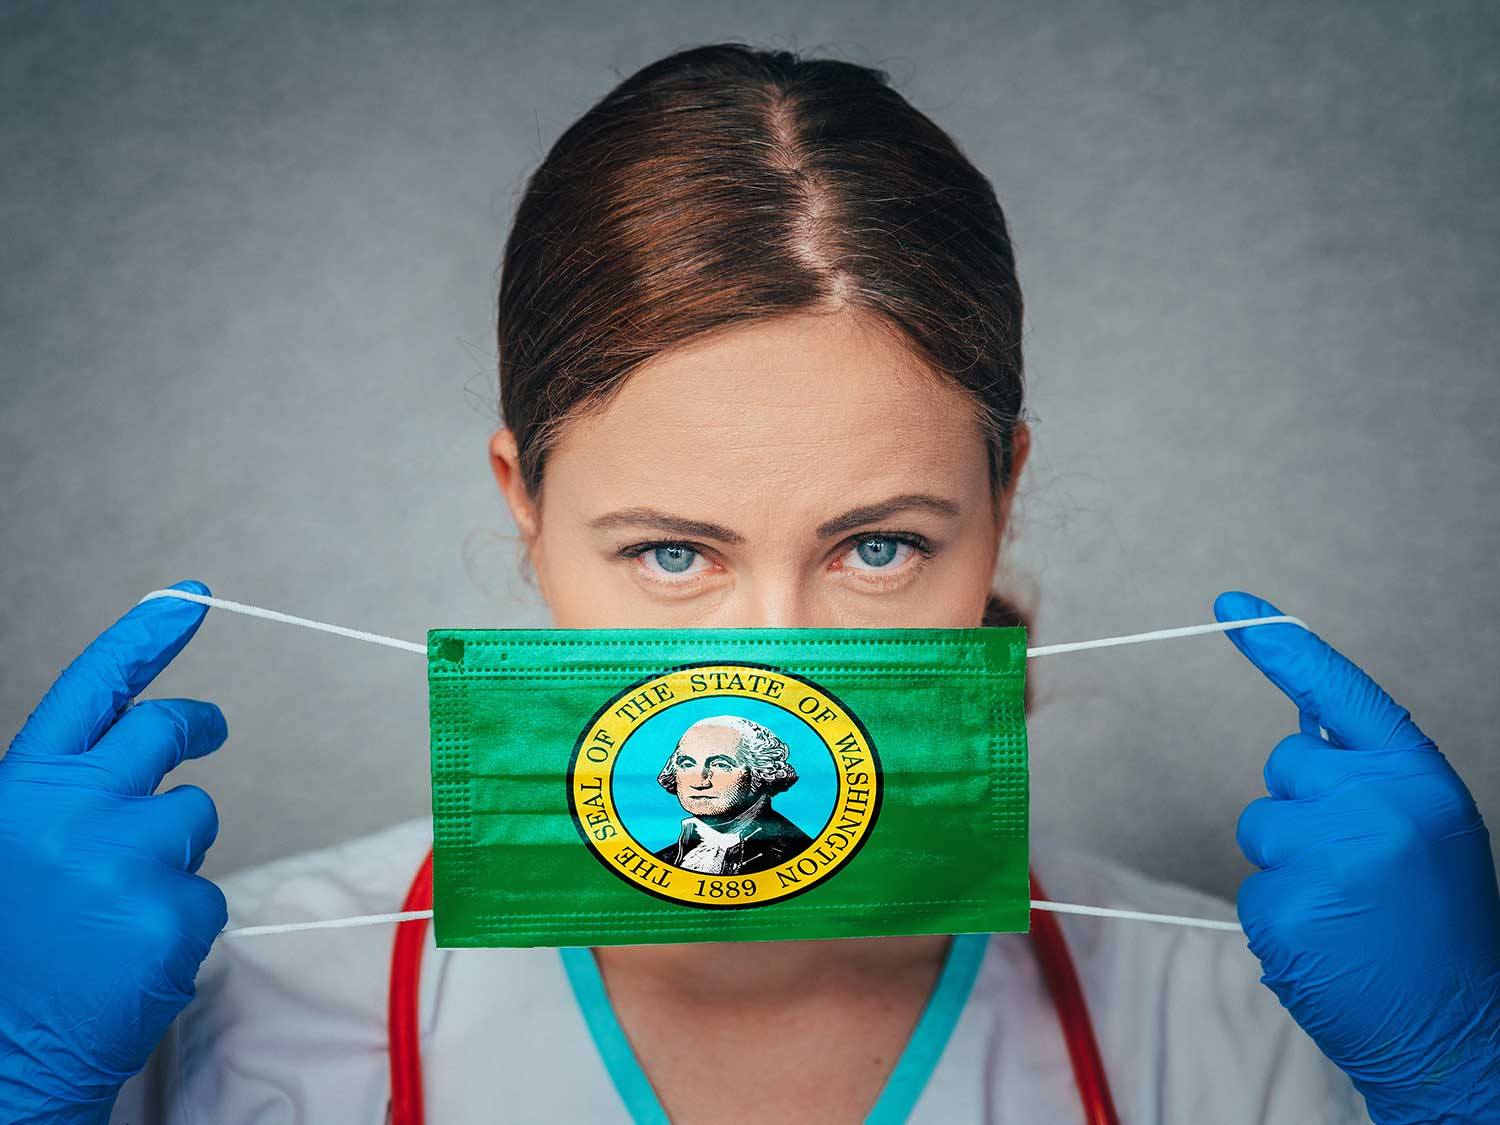 Physician Holding A Mask Over Her Face With The Washington Flag On It